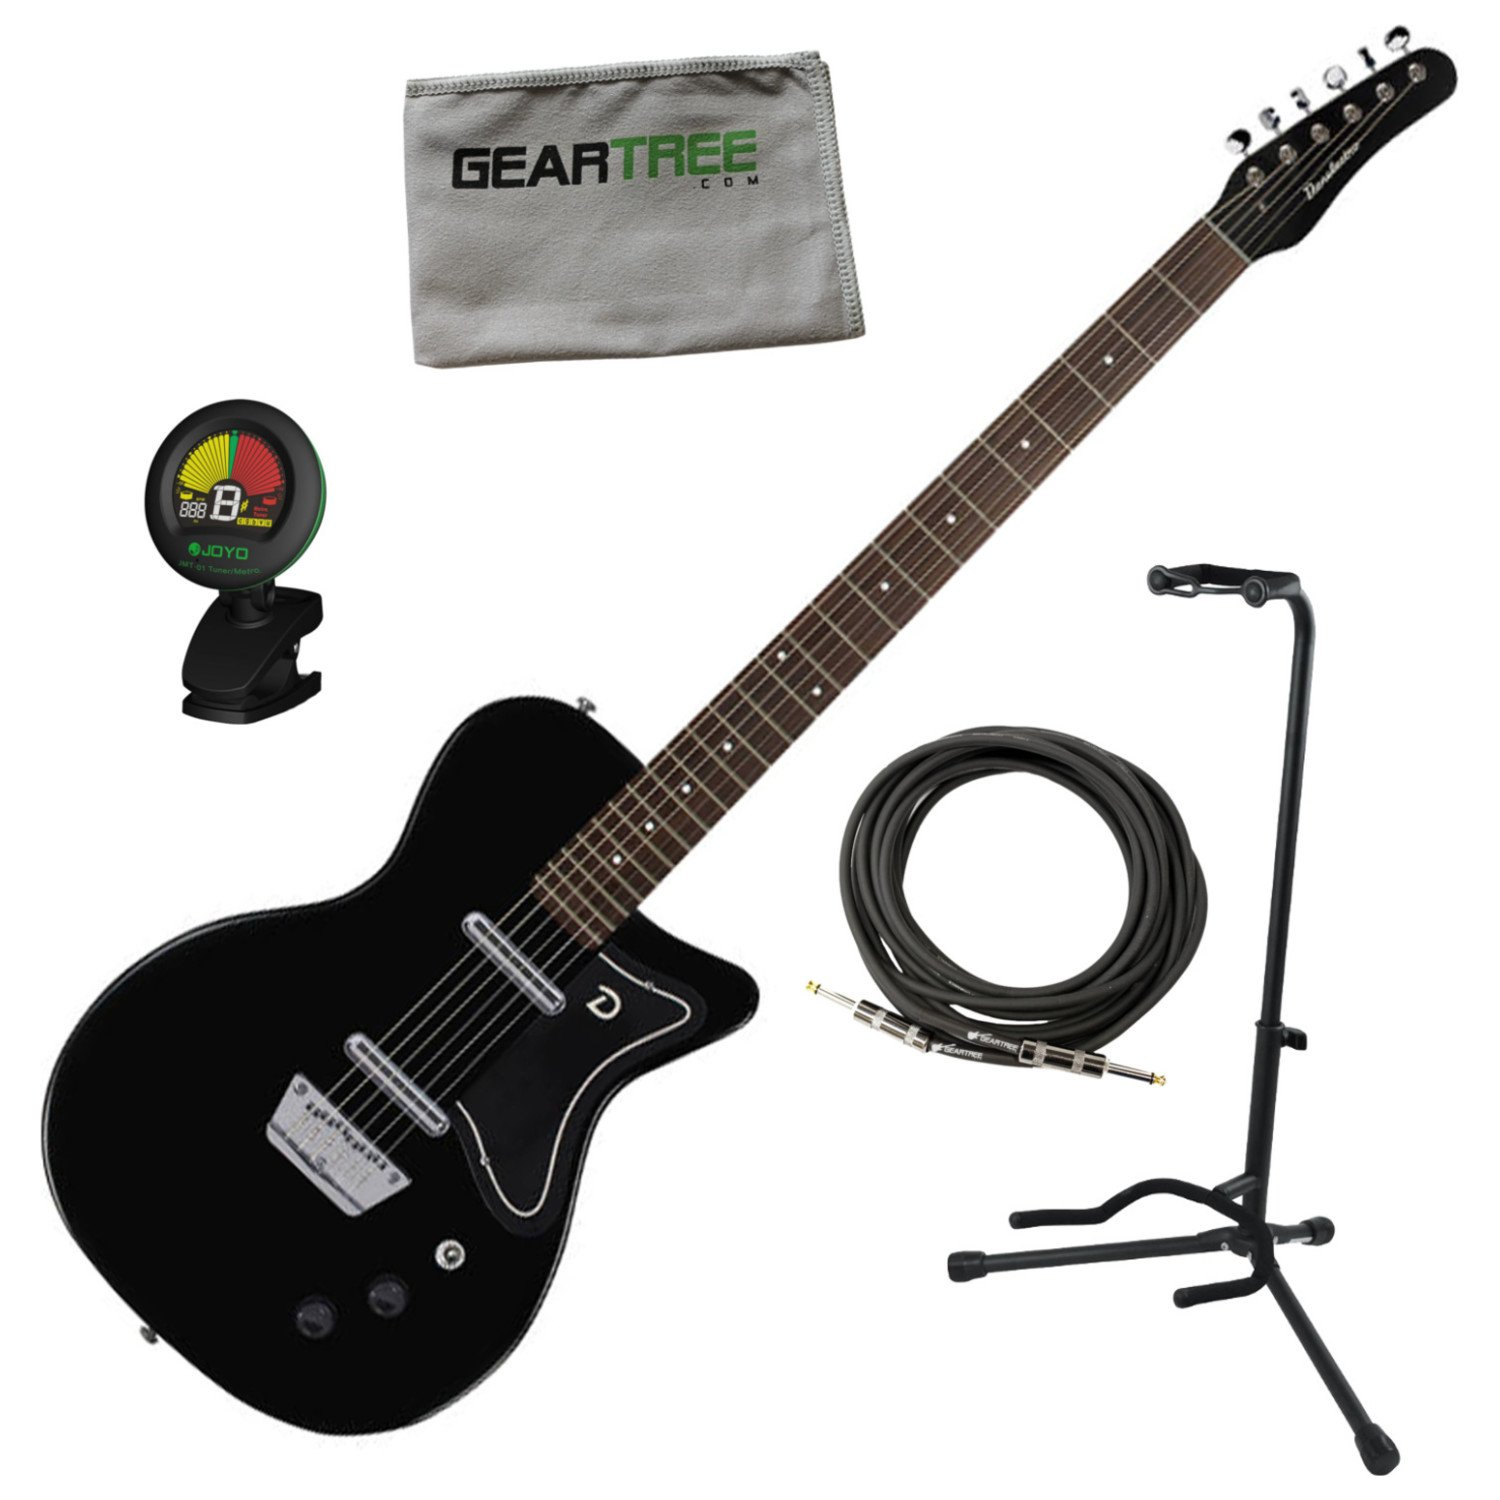 Cheap Danelectro 56 Baritone Electric Guitar Black w/Stand Cable Tuner and Cloth Black Friday & Cyber Monday 2019